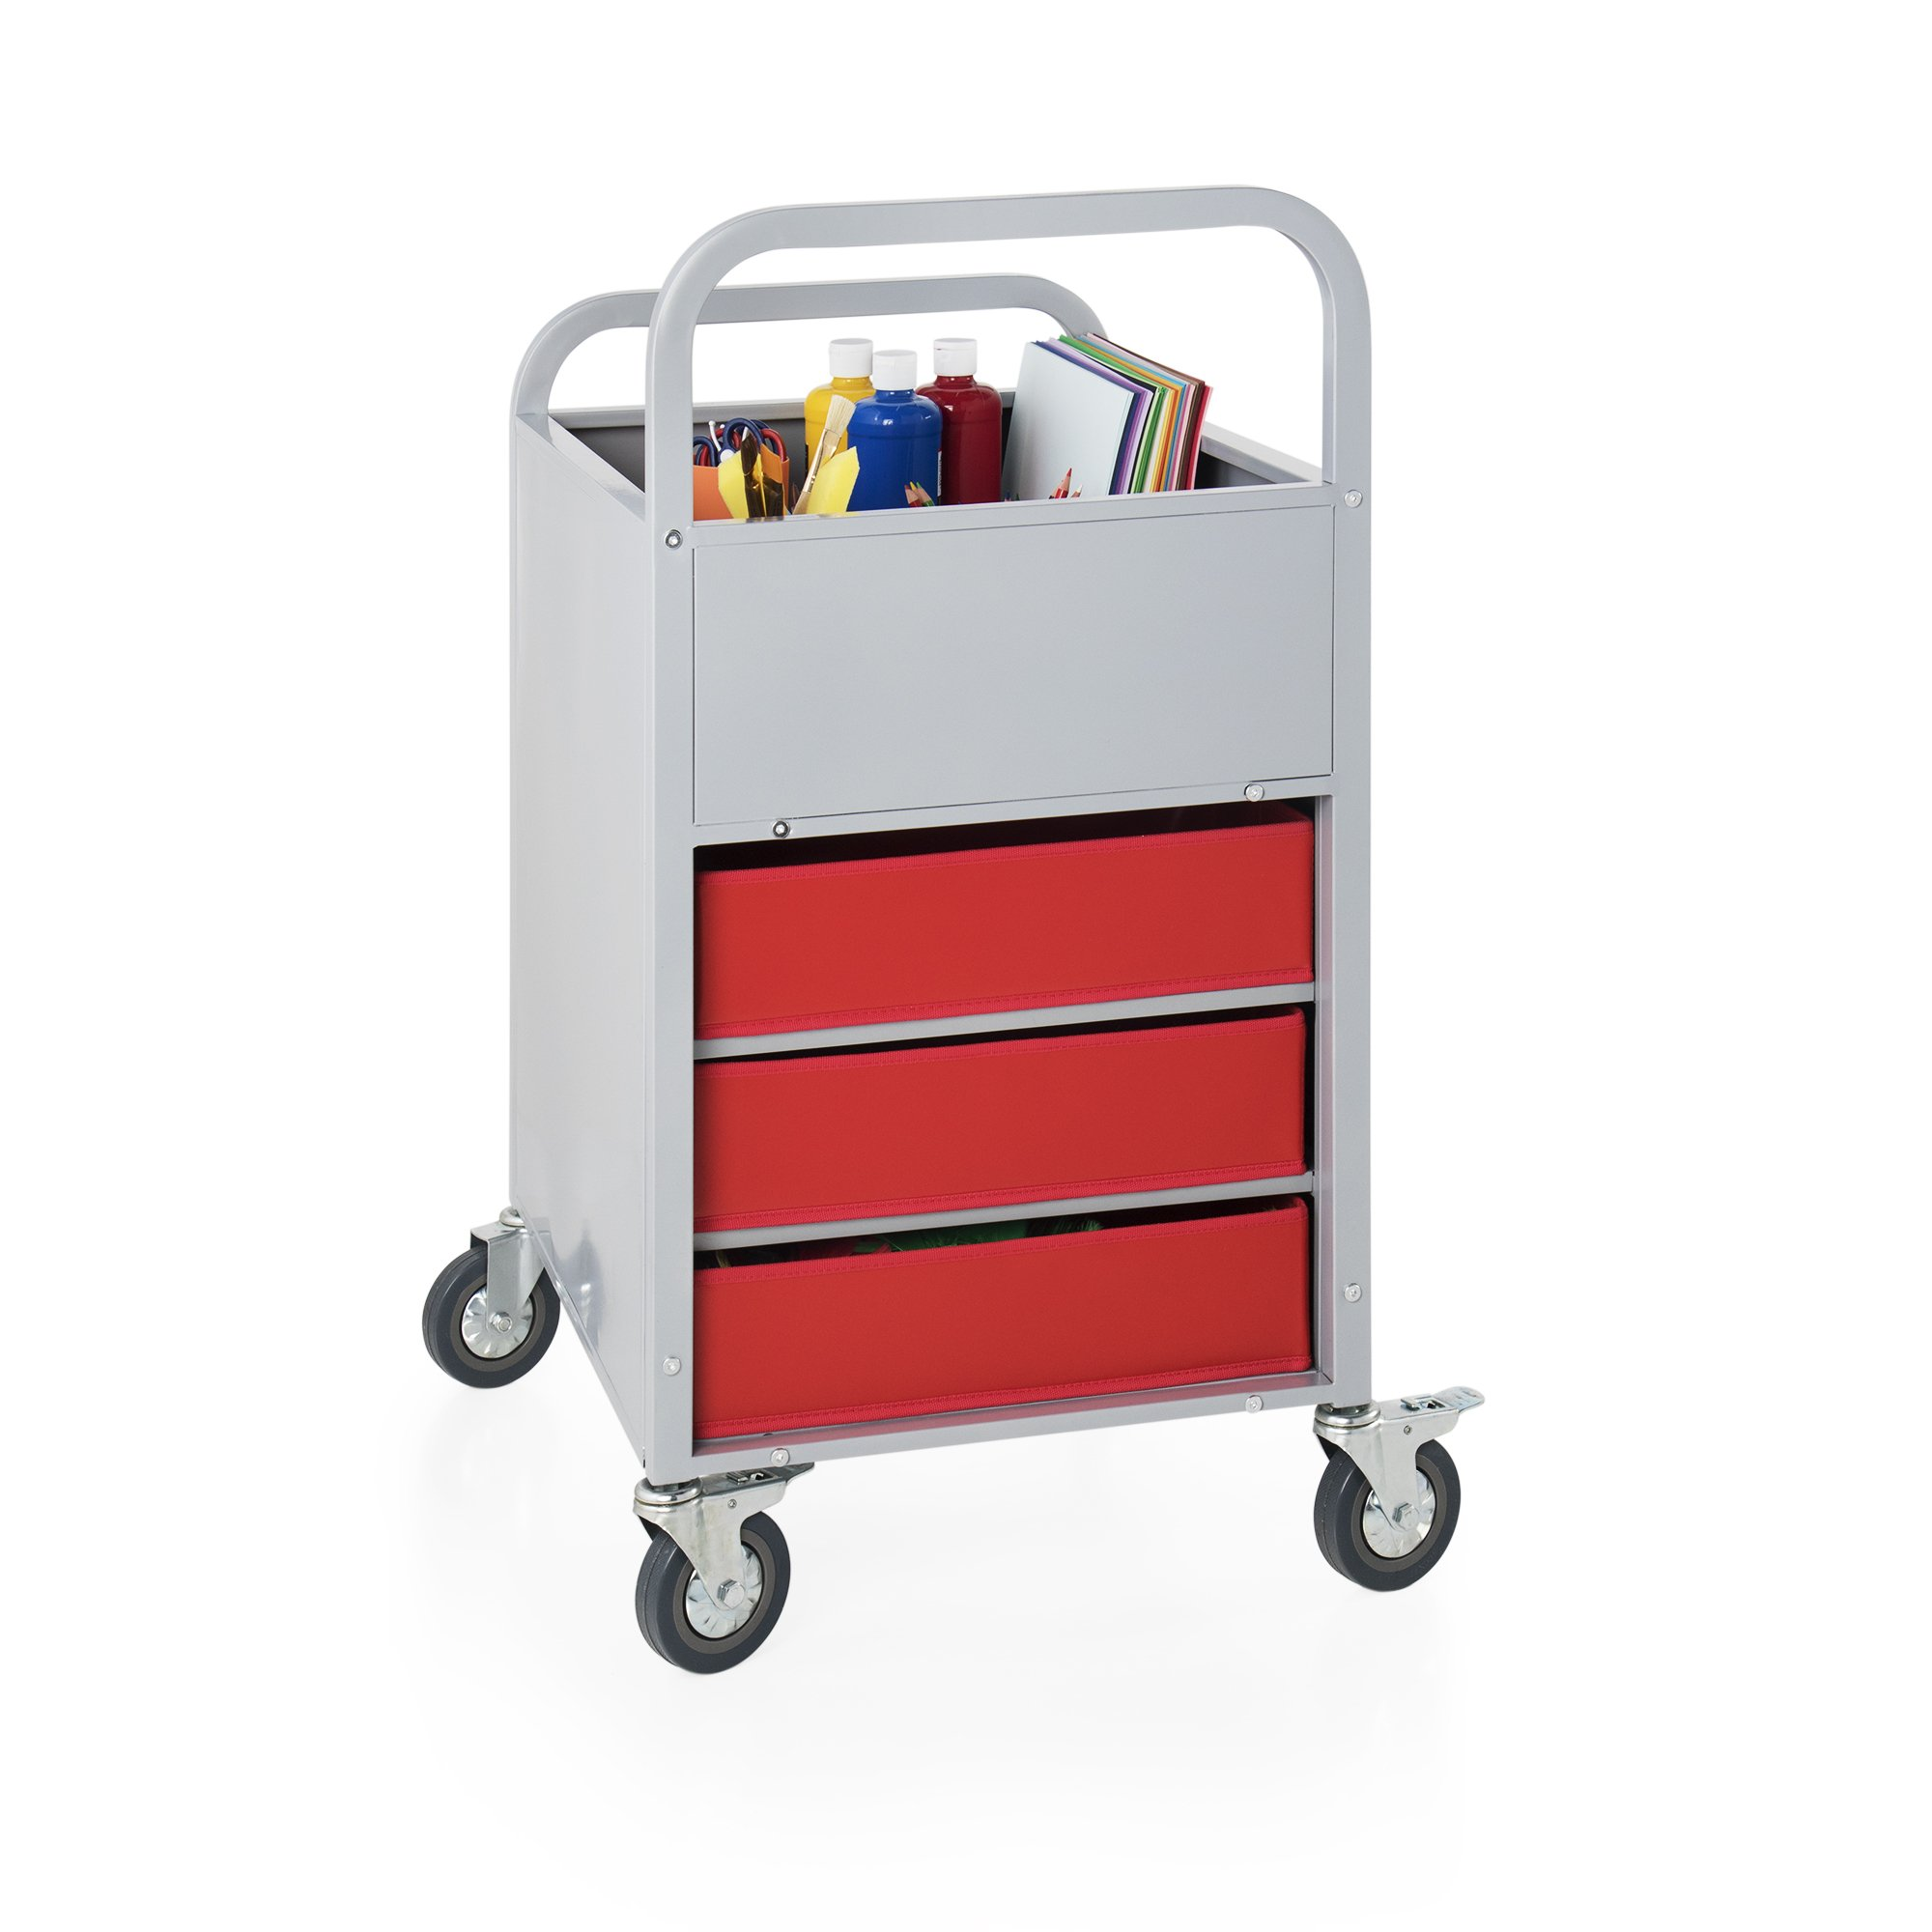 Rolling Display and Storage Utillity Cart, Metal Media Truck with Wheels, 3 Shelf Fabric Bins, Office and School Supply by Guidecraft